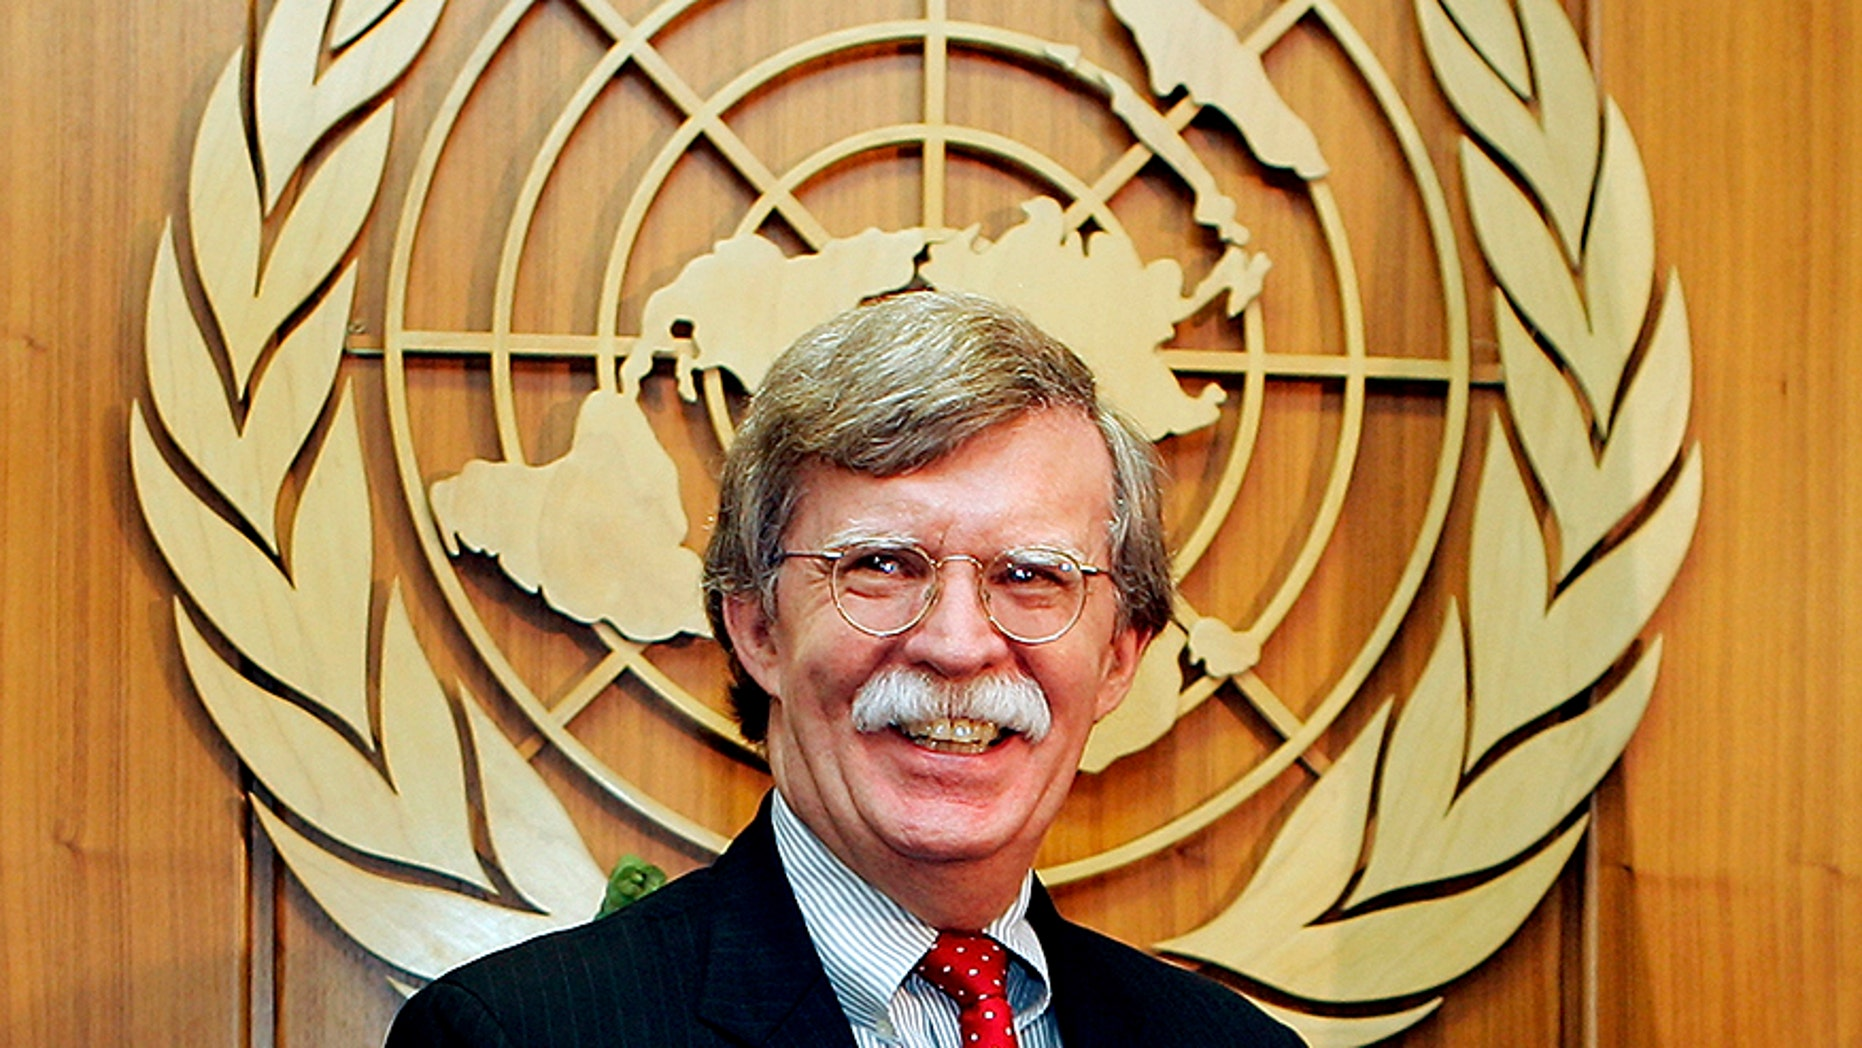 John Bolton, new United States Ambassador to the United Nations, smiles during a meeting to present his credentials to United Nations Secretary-General Kofi Annan at the U.N. headquarters in New York August 2, 2005.